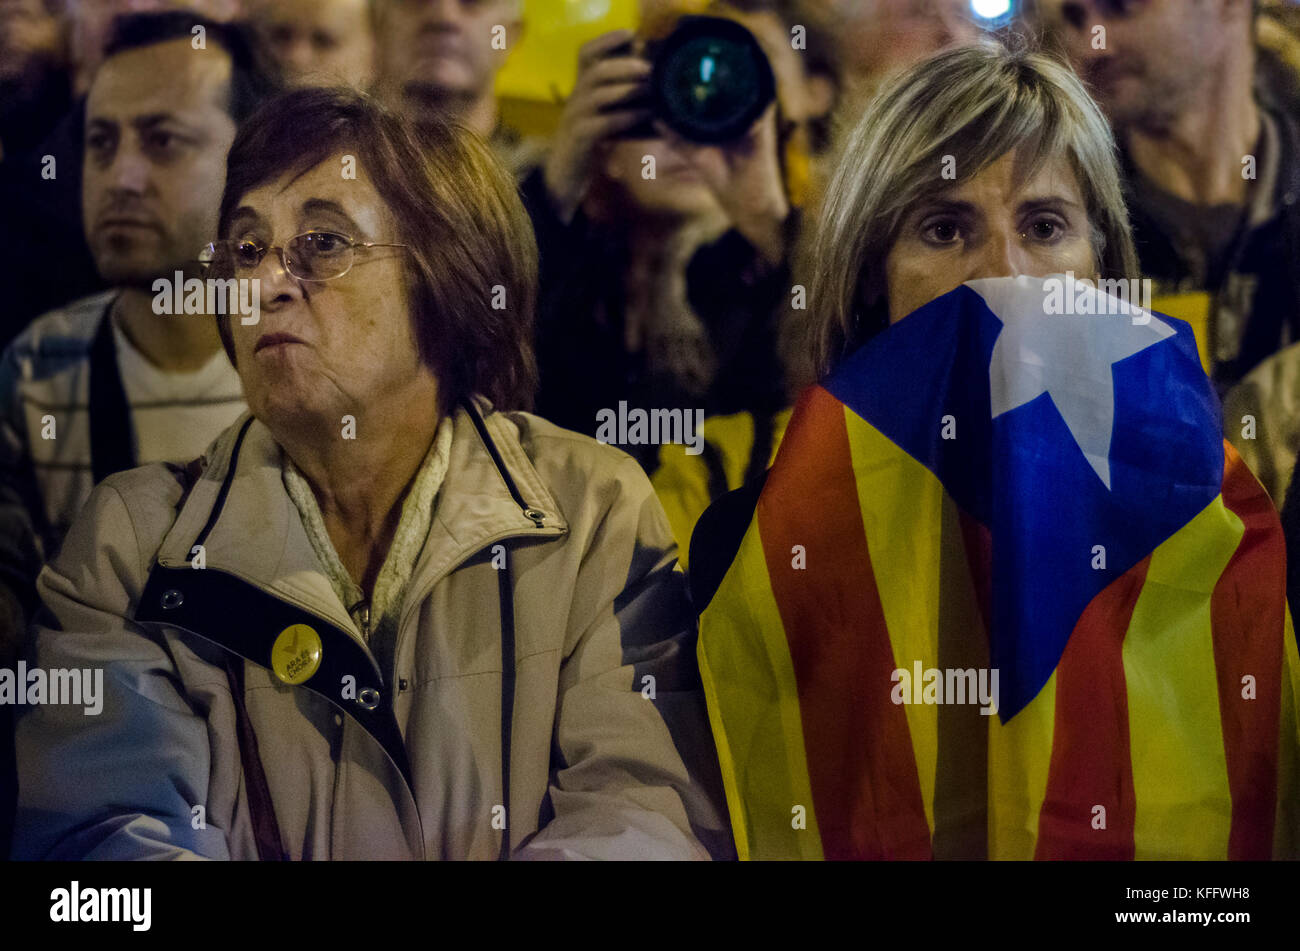 Two women at the end of the 9N campaign, Barcelona. Credit: Carles Desfilis / Alamy - Stock Image